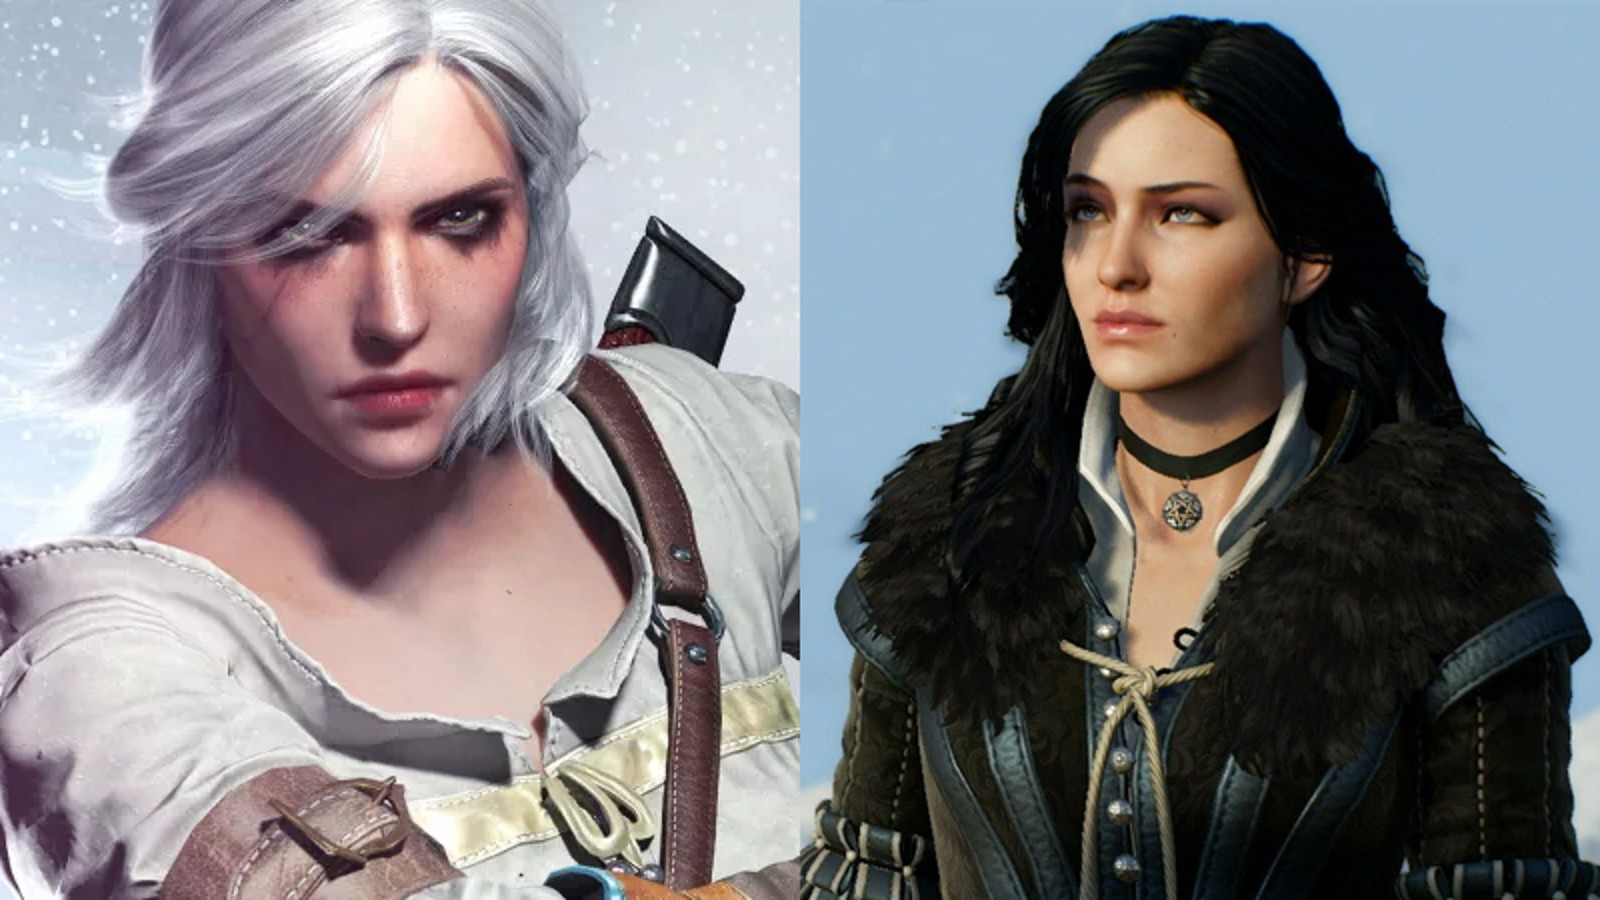 Netflix's Witcher Series Has Cast 2 of Its Most Important Female Characters